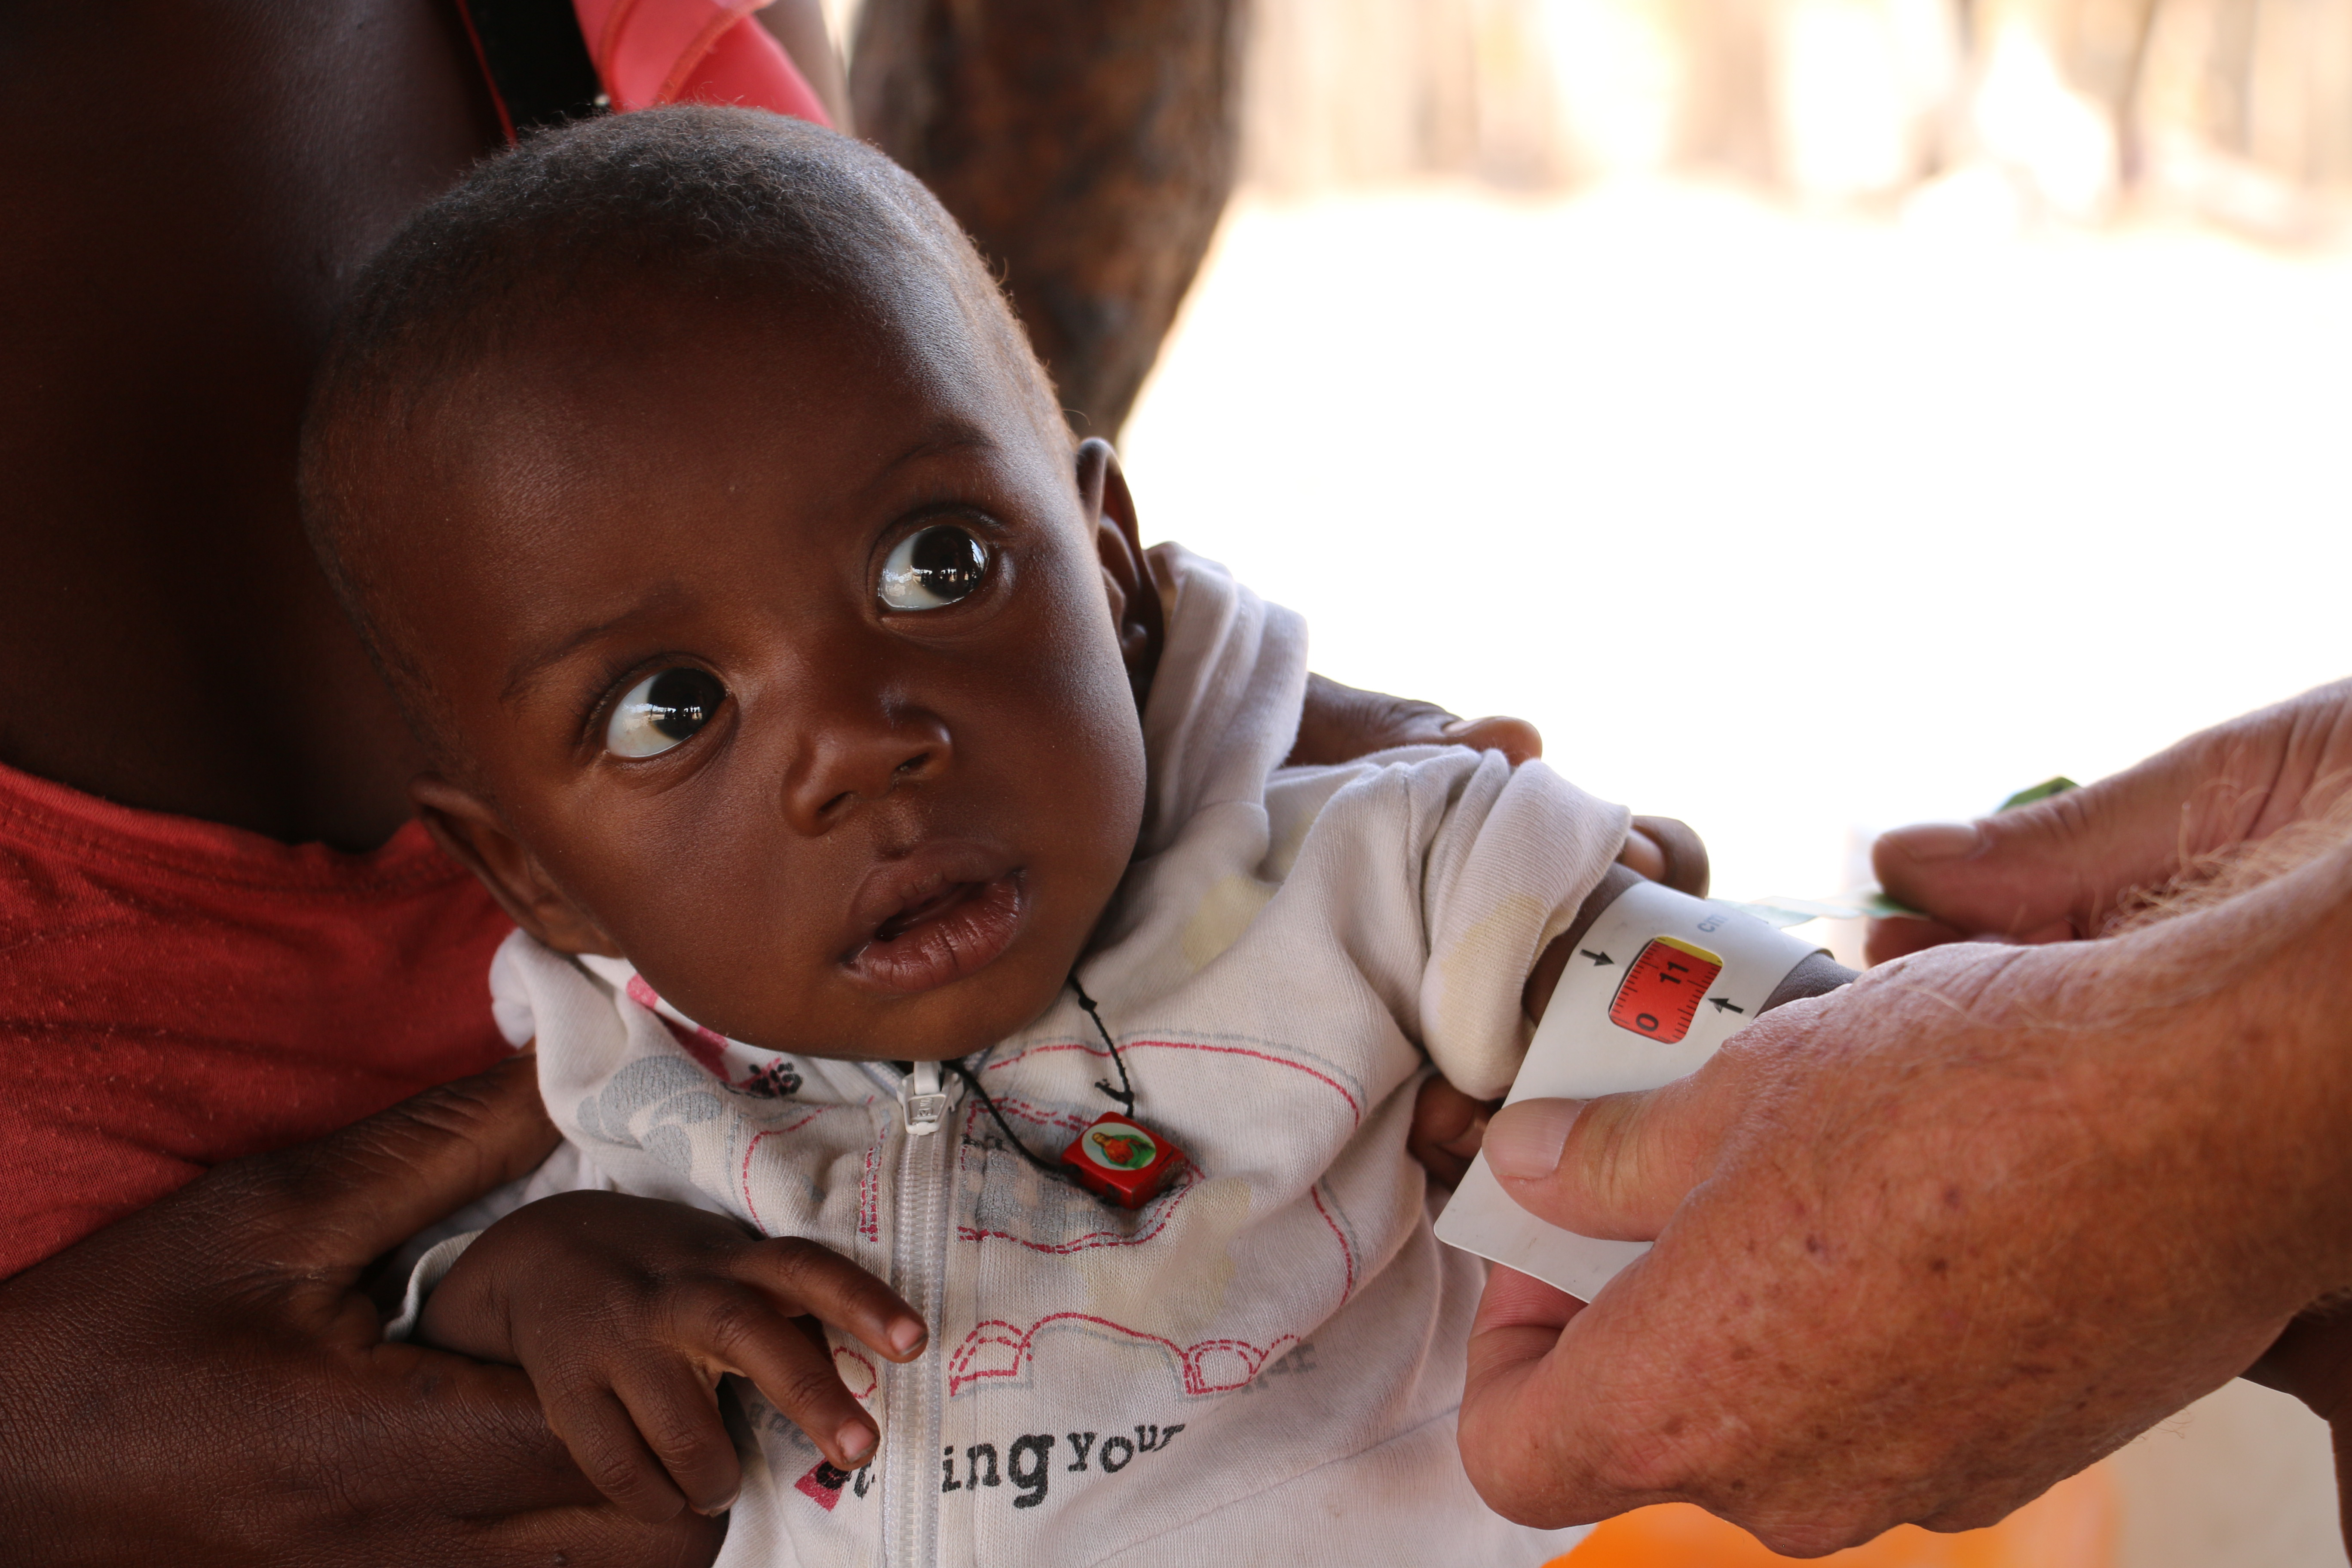 Beto is a six months old boy severely malnourished